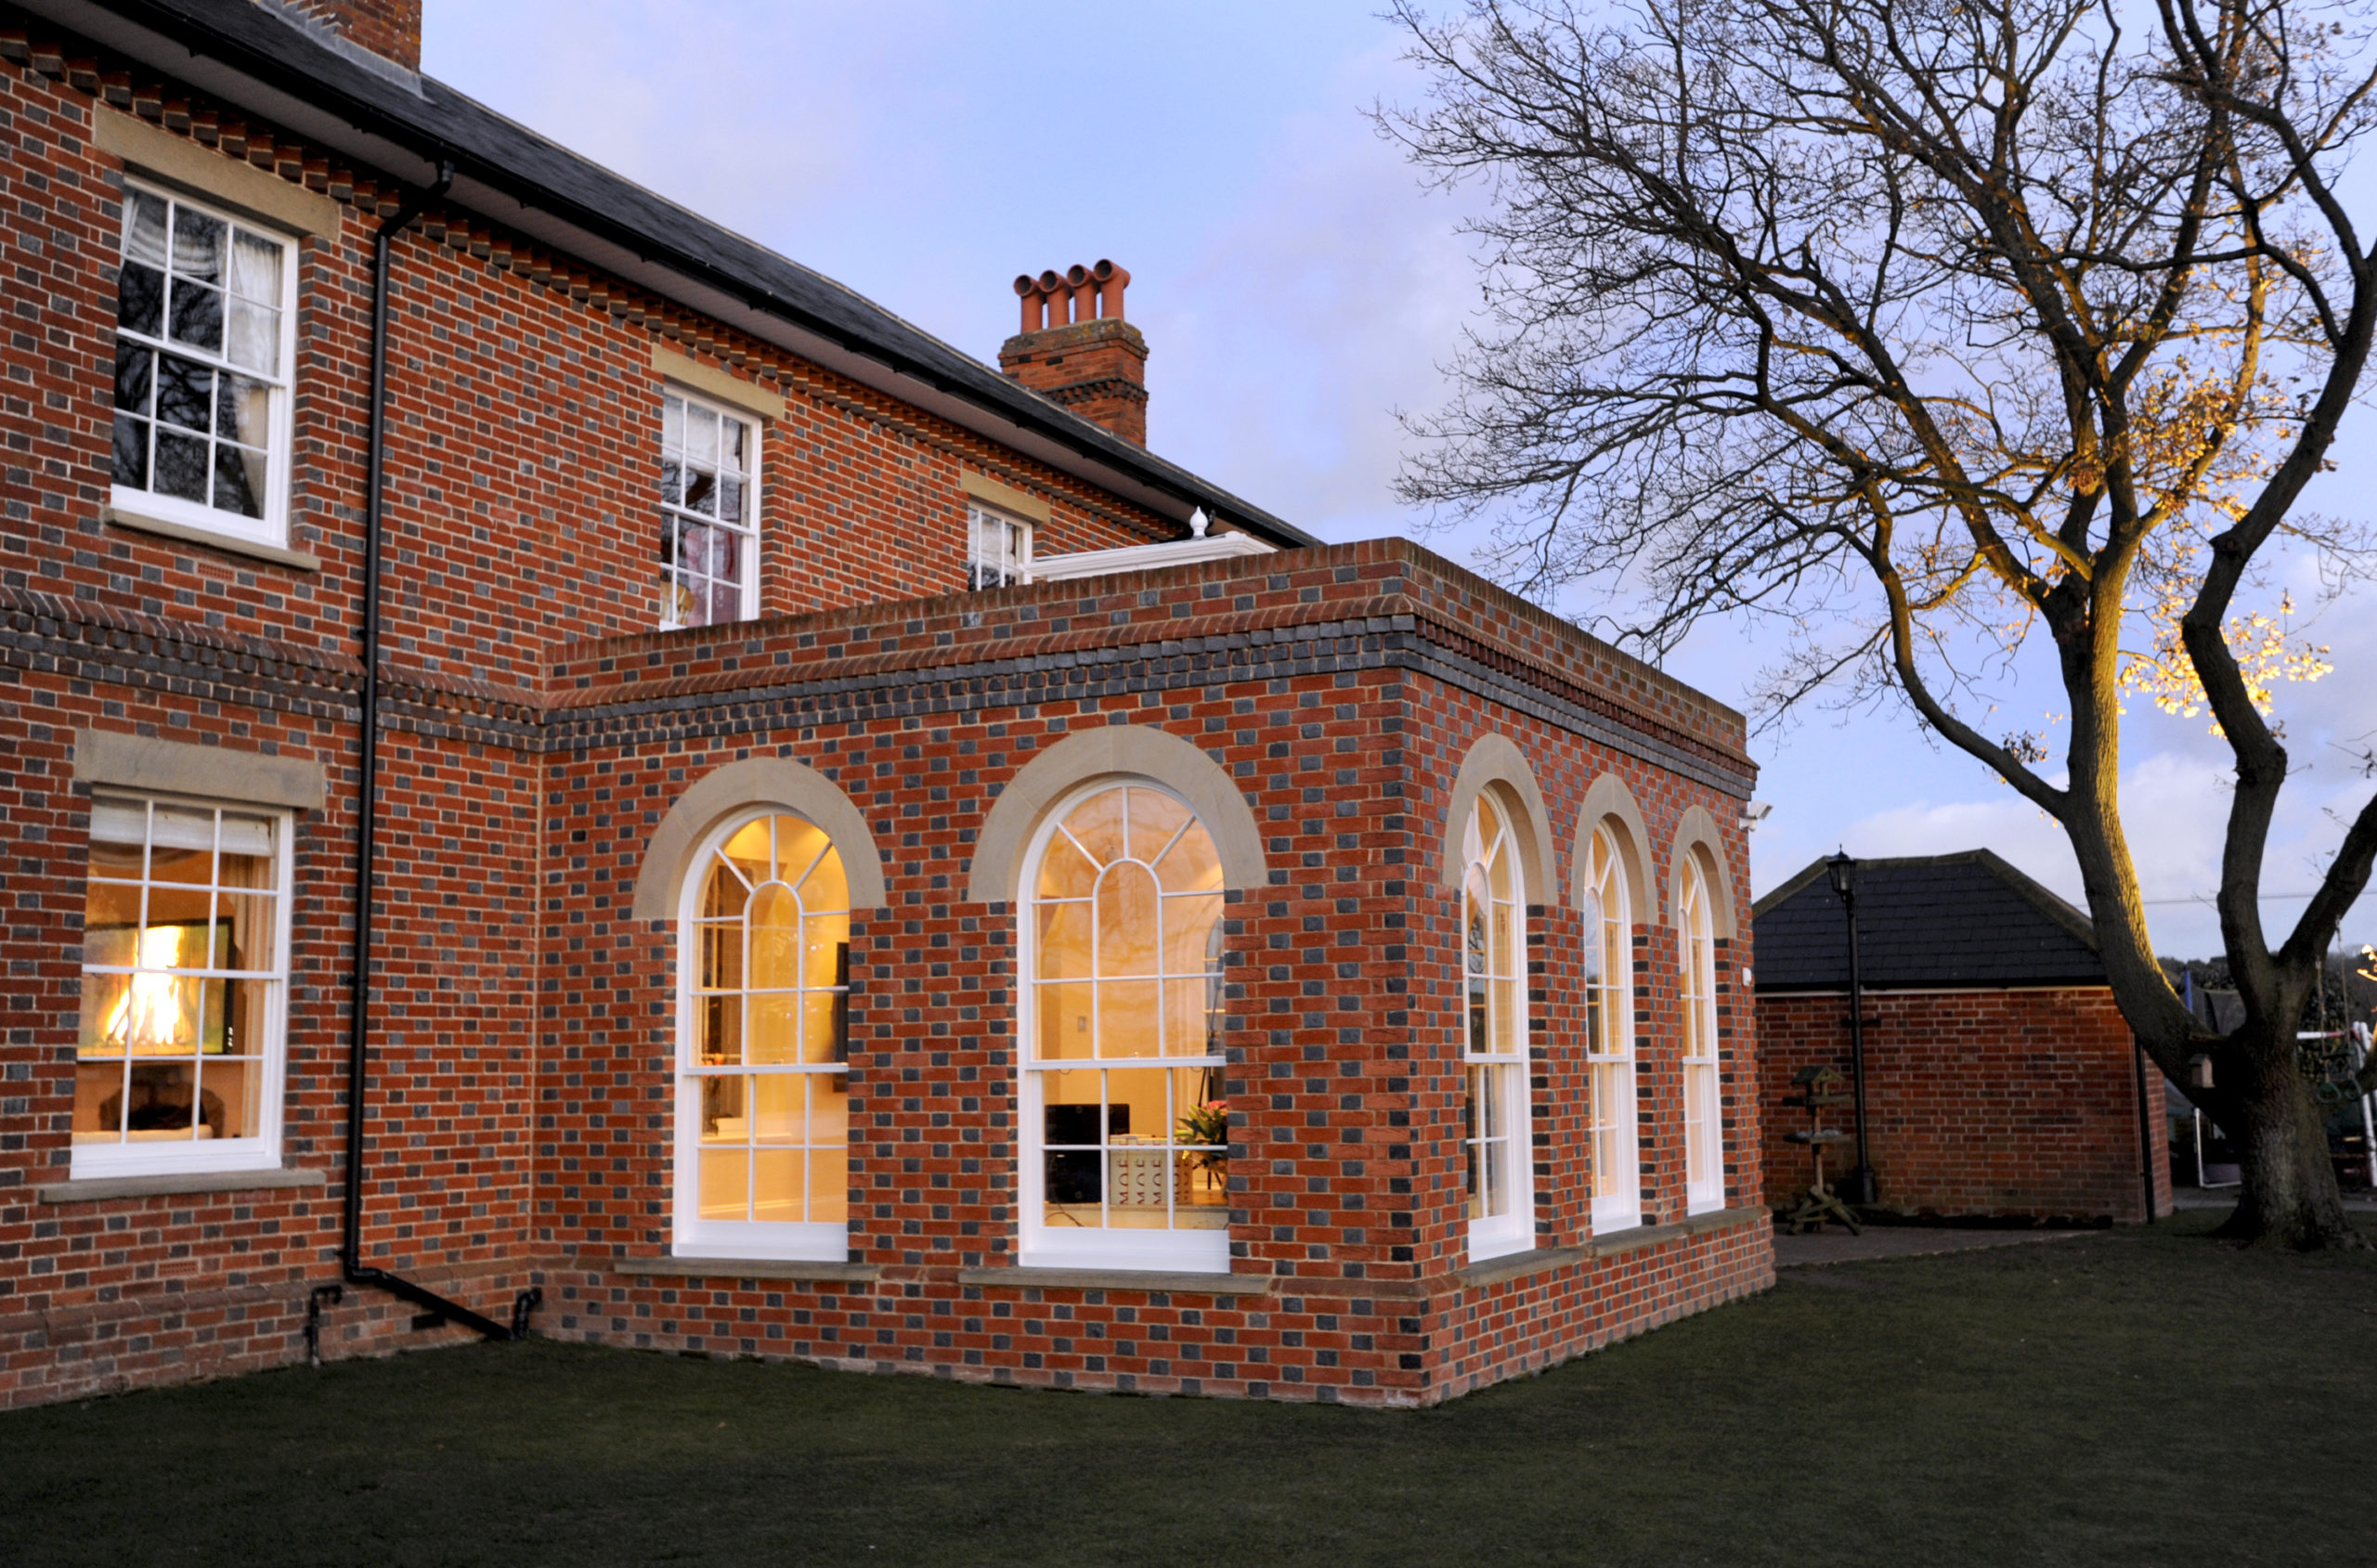 Handmade facing bricks with traditional glazed headers